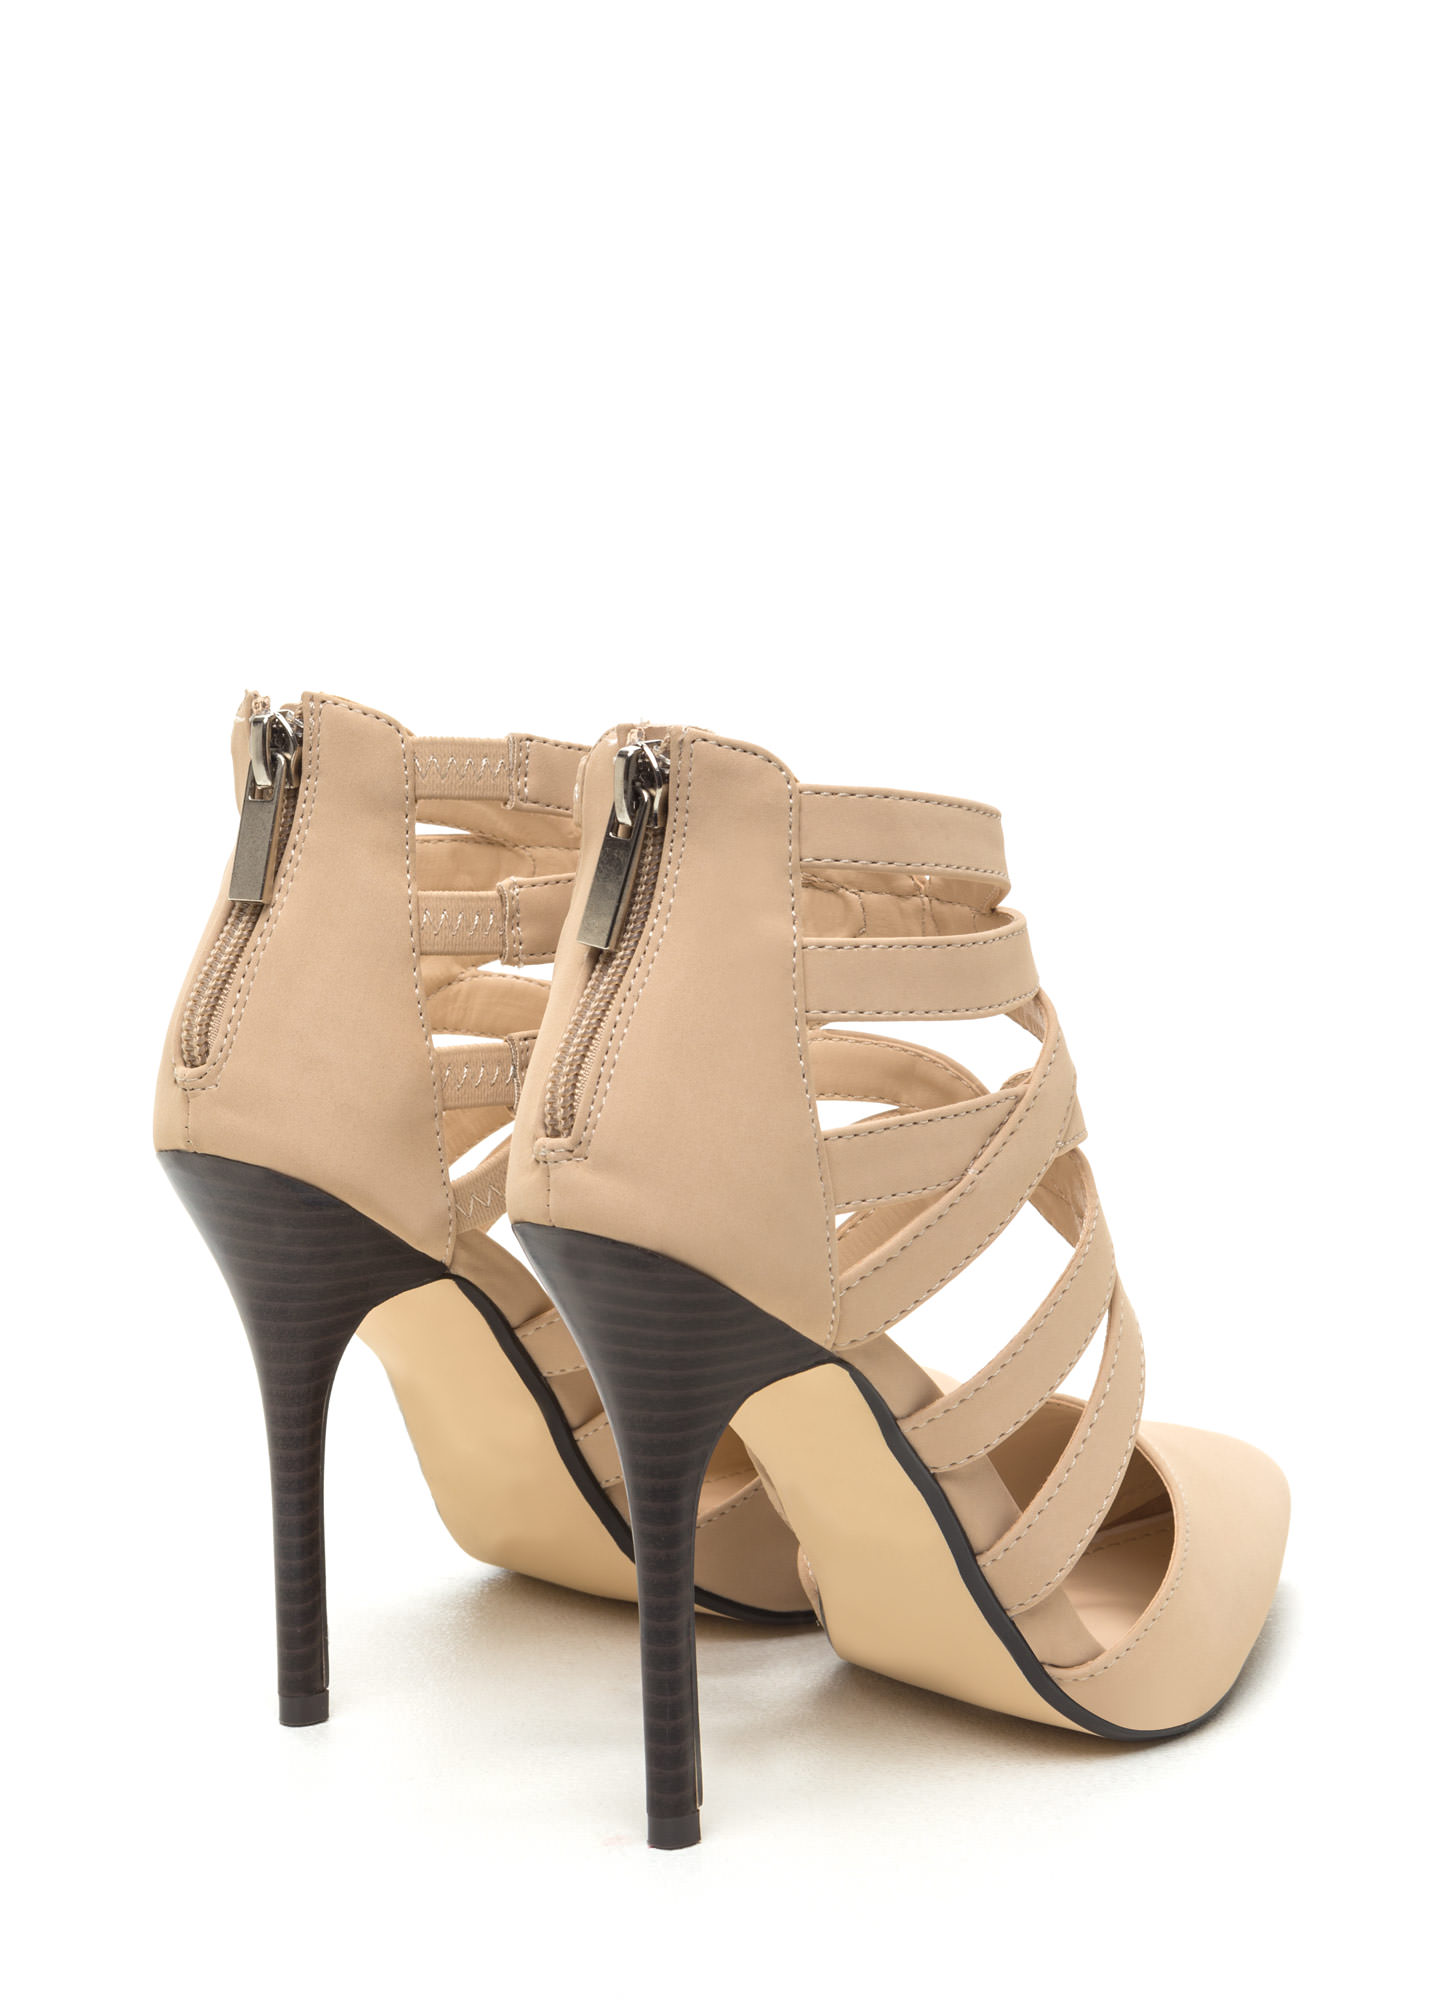 Caged Take Pointy Toe Heels NUDE